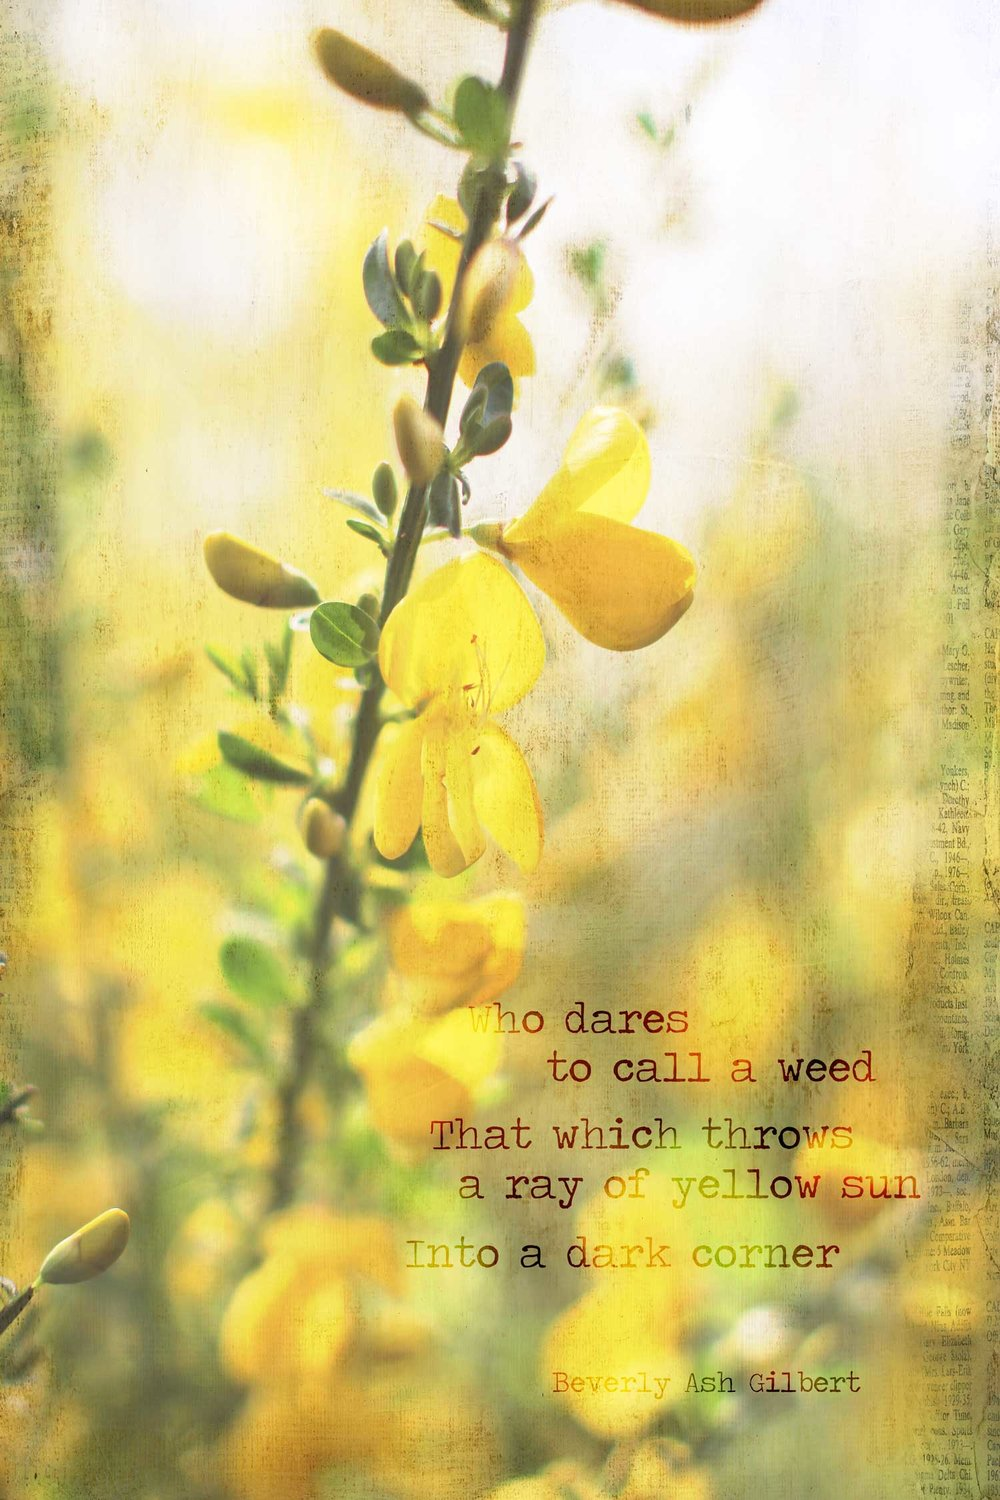 Positive_Inspiration_ScotchBroom_CallAWeed.jpg